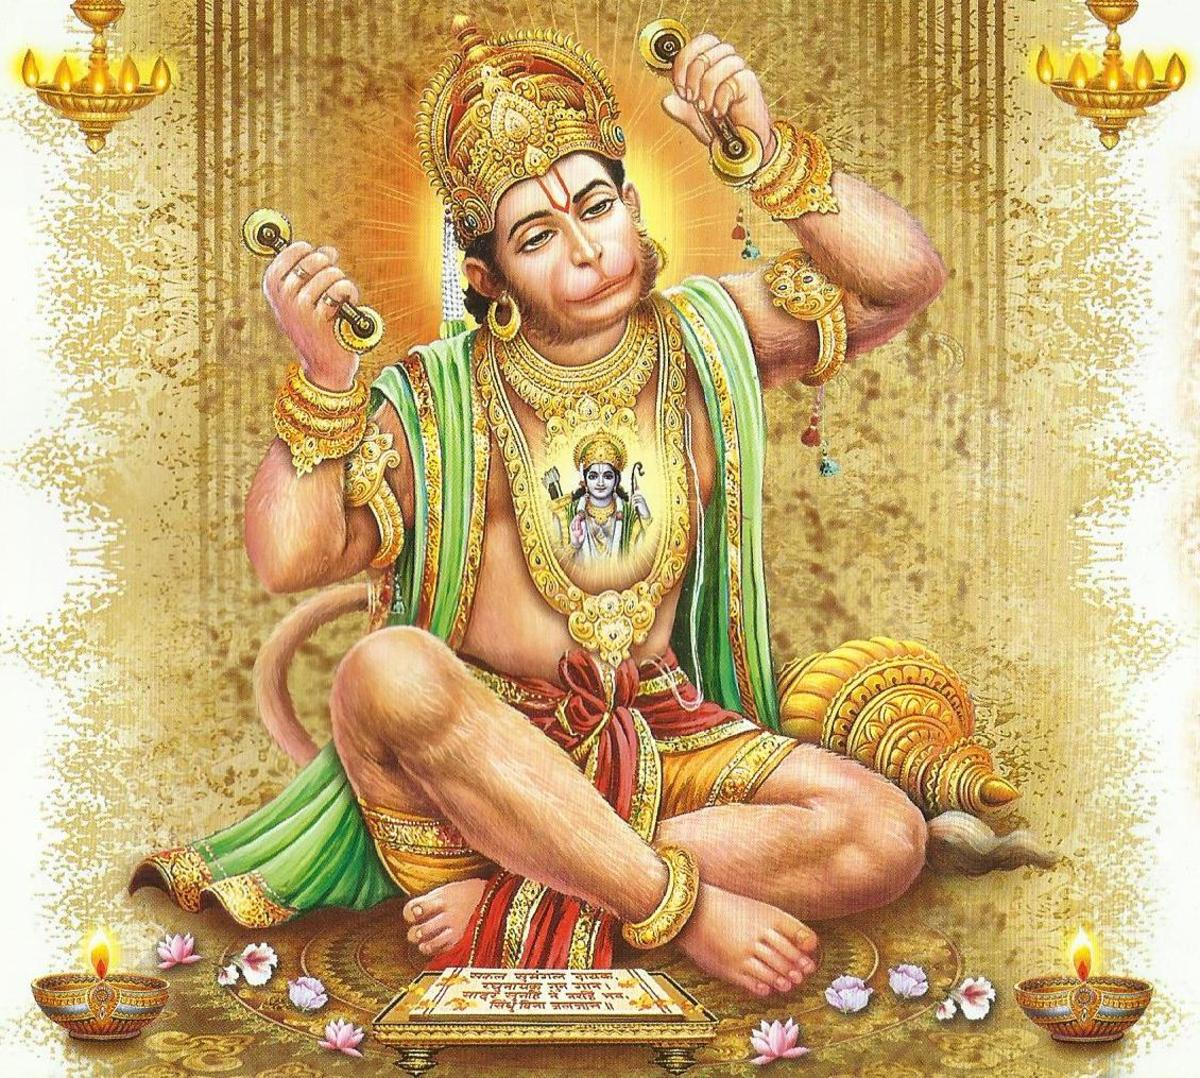 Mantras of Lord Hanuman- The incarnation of Lord Shiva